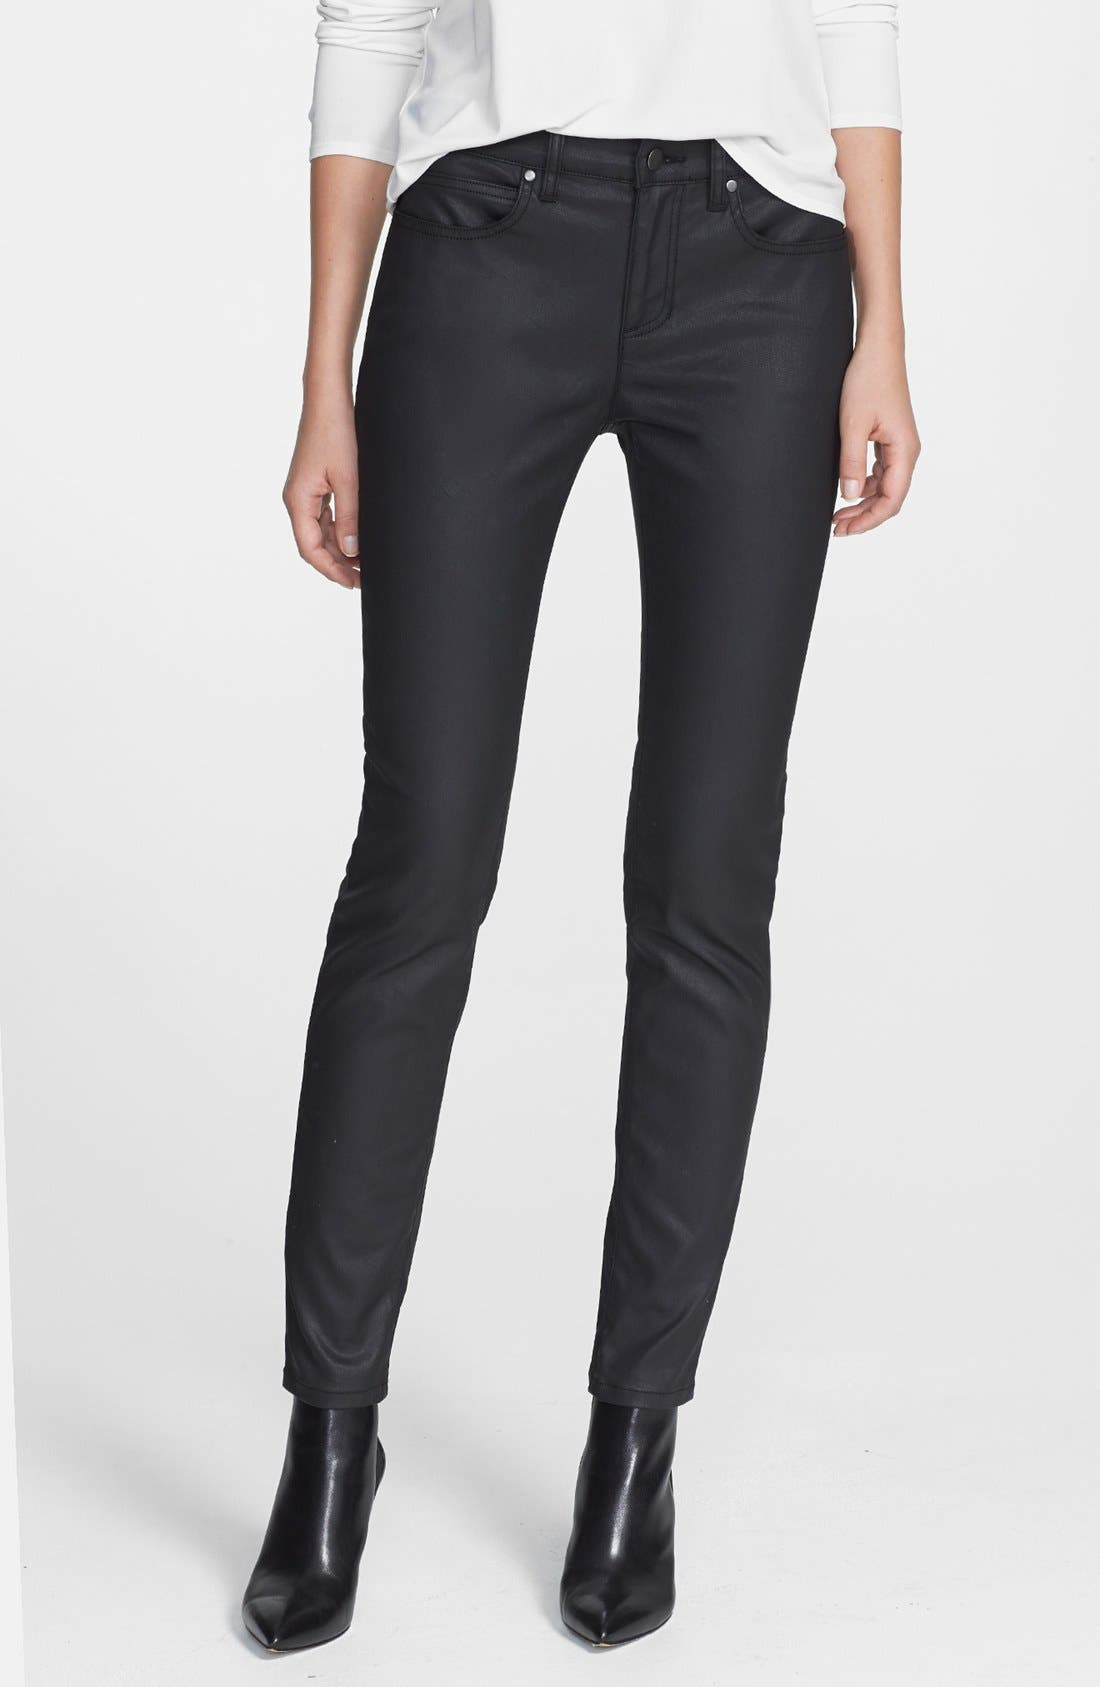 Main Image - Eileen Fisher Ankle Skinny Jeans (Black) (Petite)